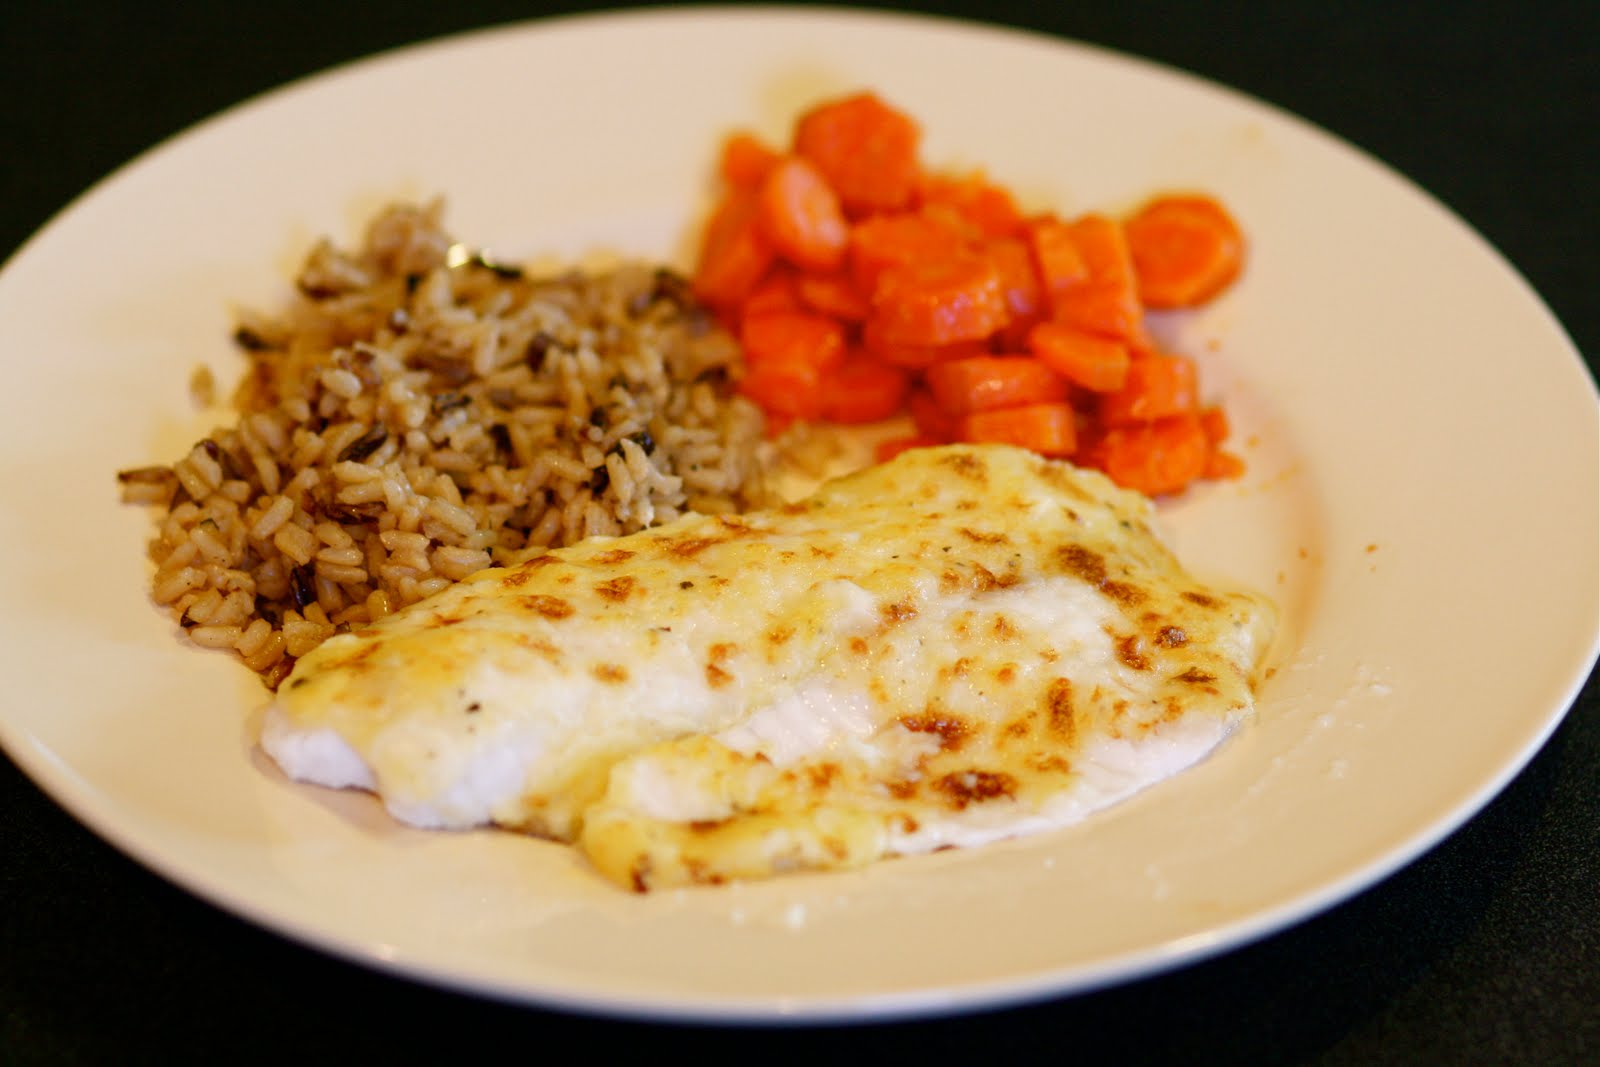 TexasMacks: Broiled Tilapia Parmesan